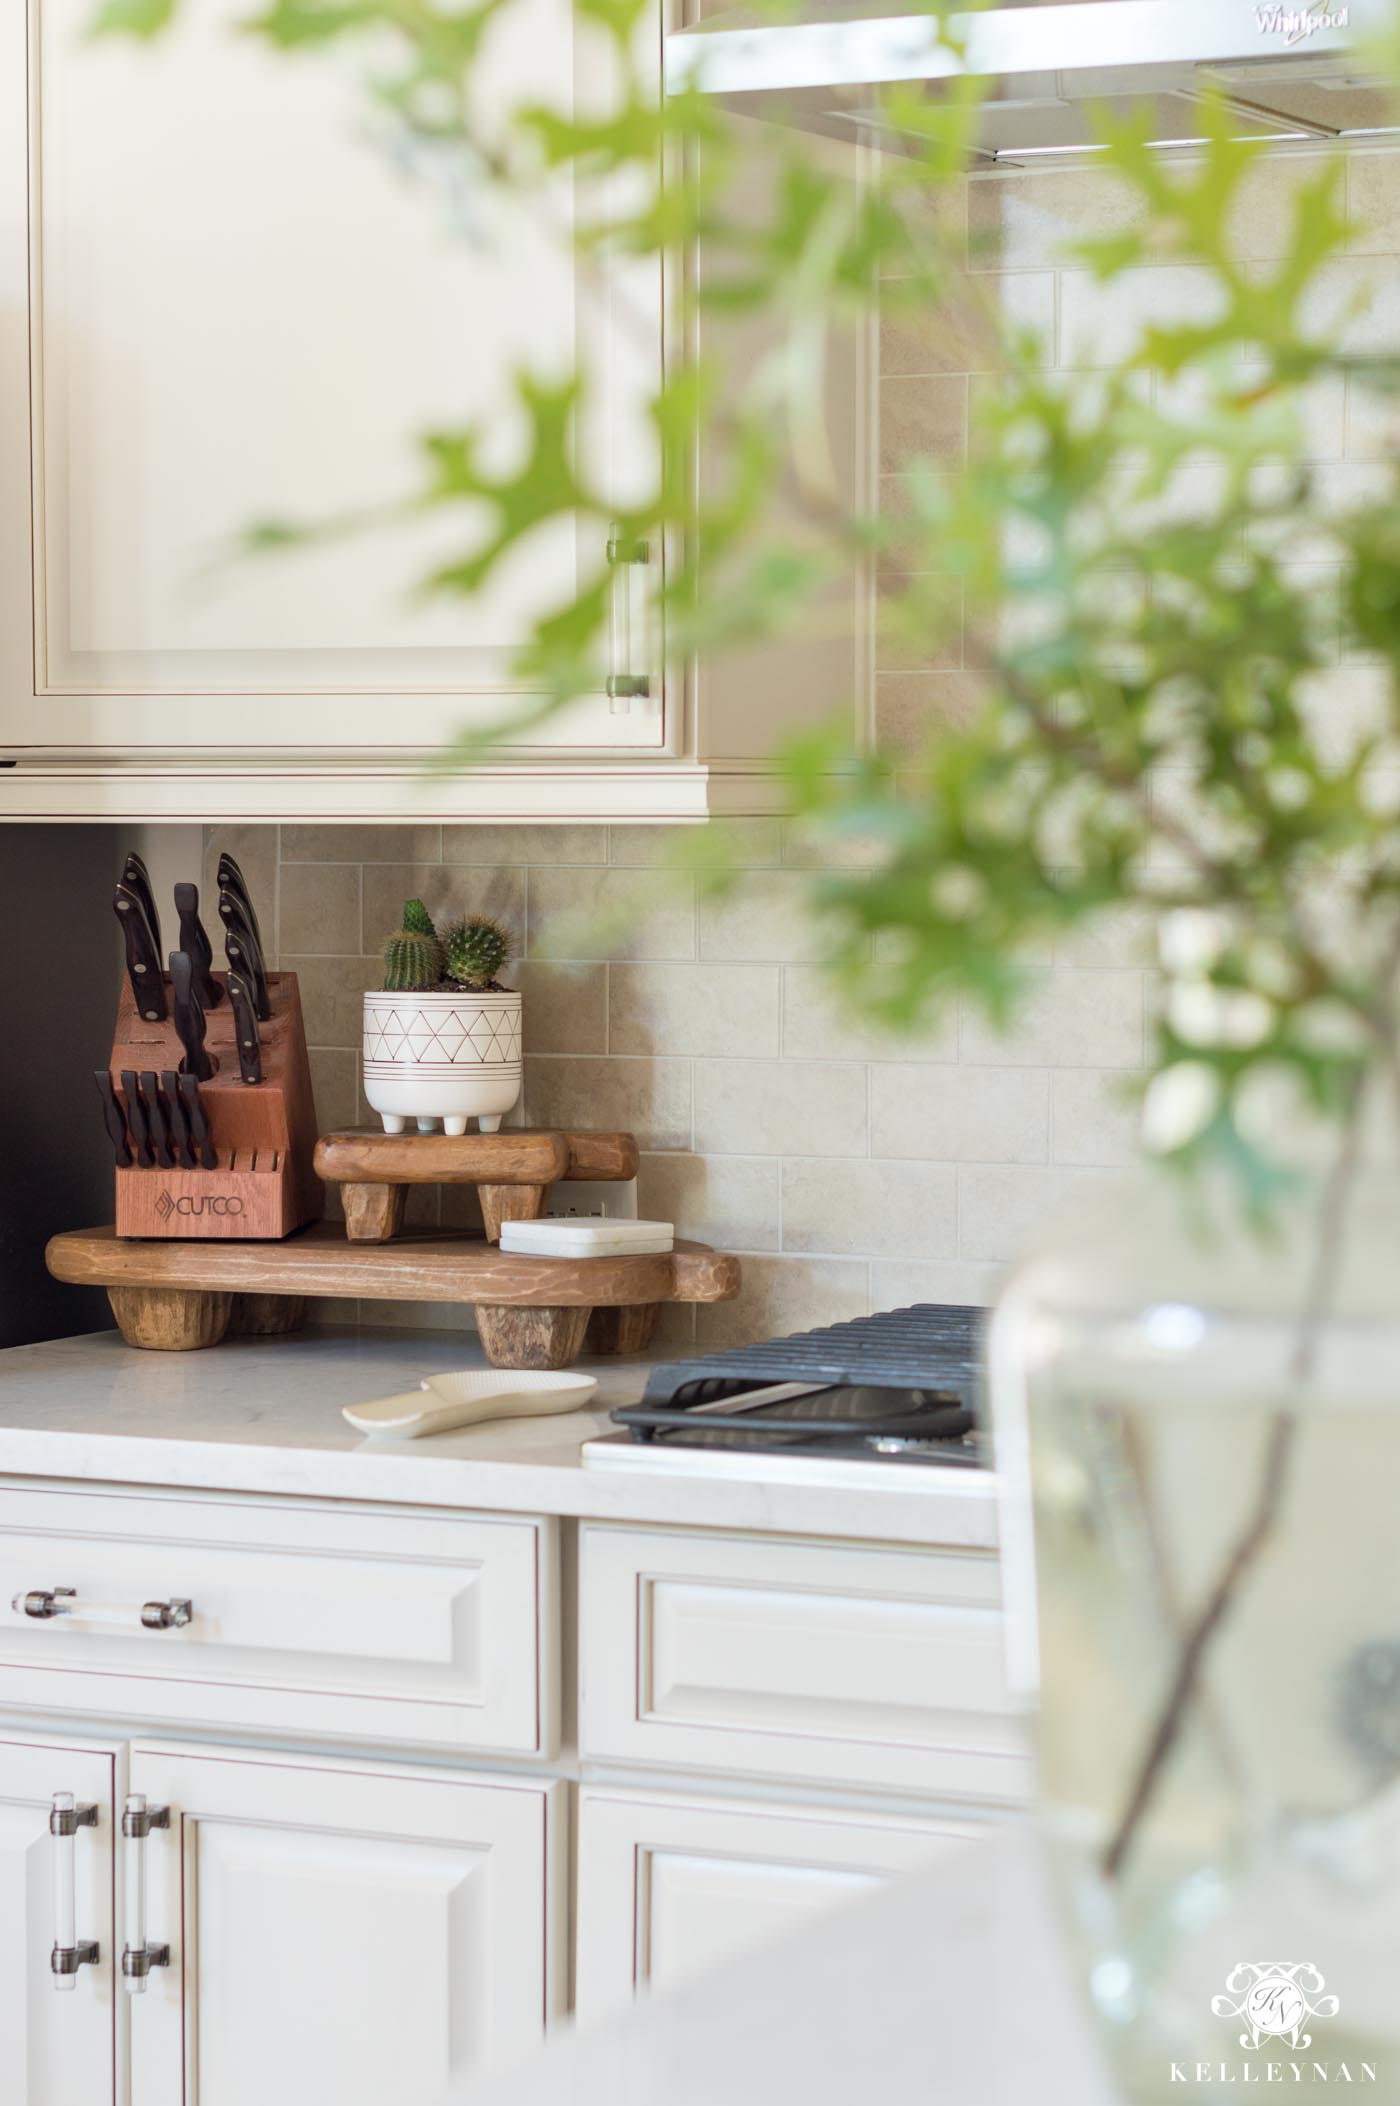 Easiest ways to update a kitchen